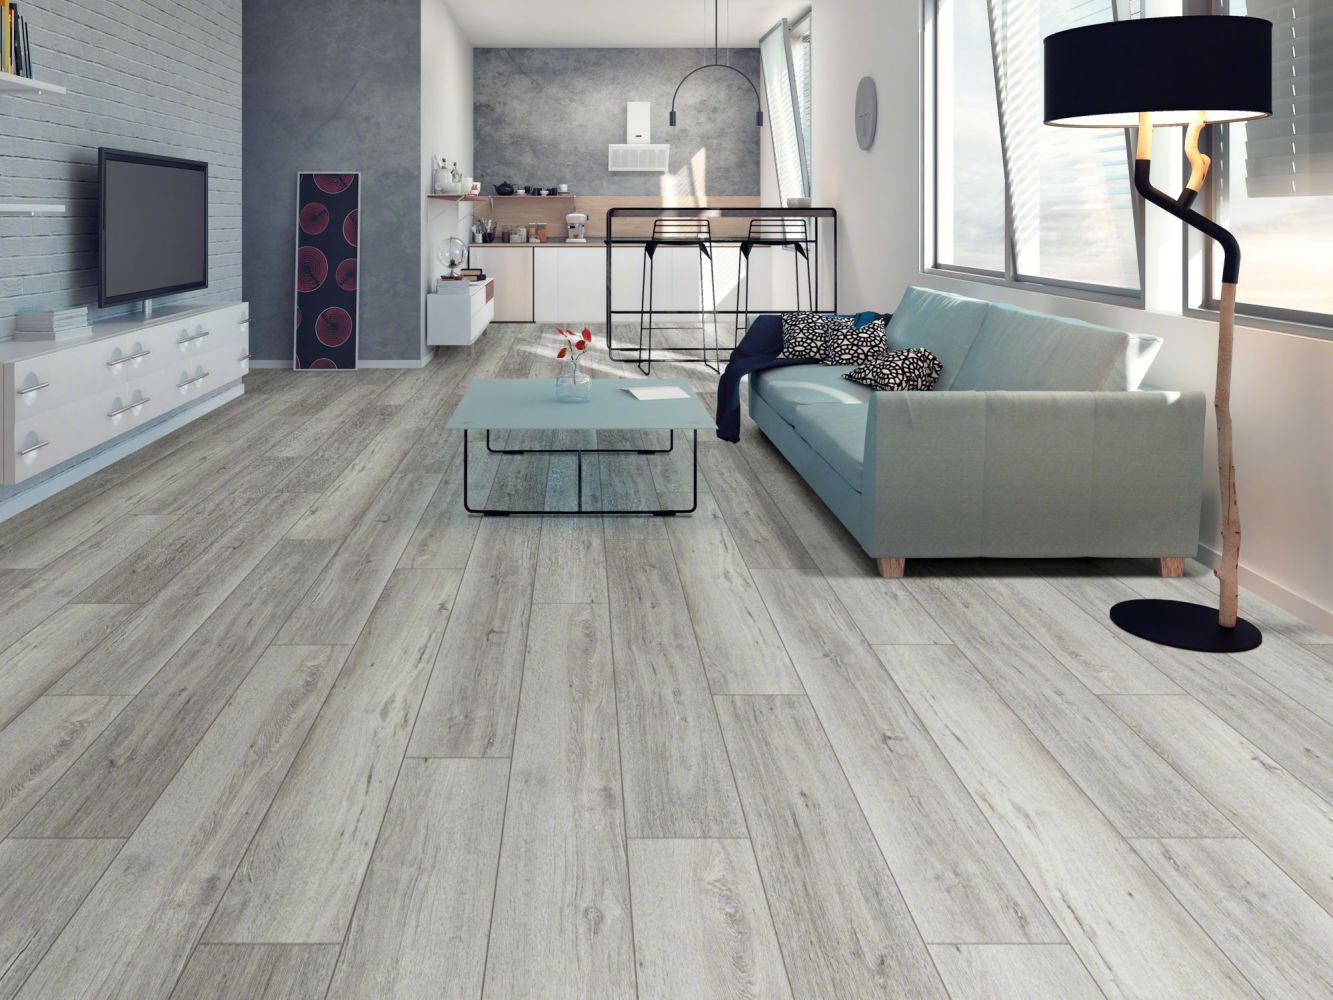 Shaw Floors Resilient Residential Intrepid HD Plus Wye Oak 05004_2024V